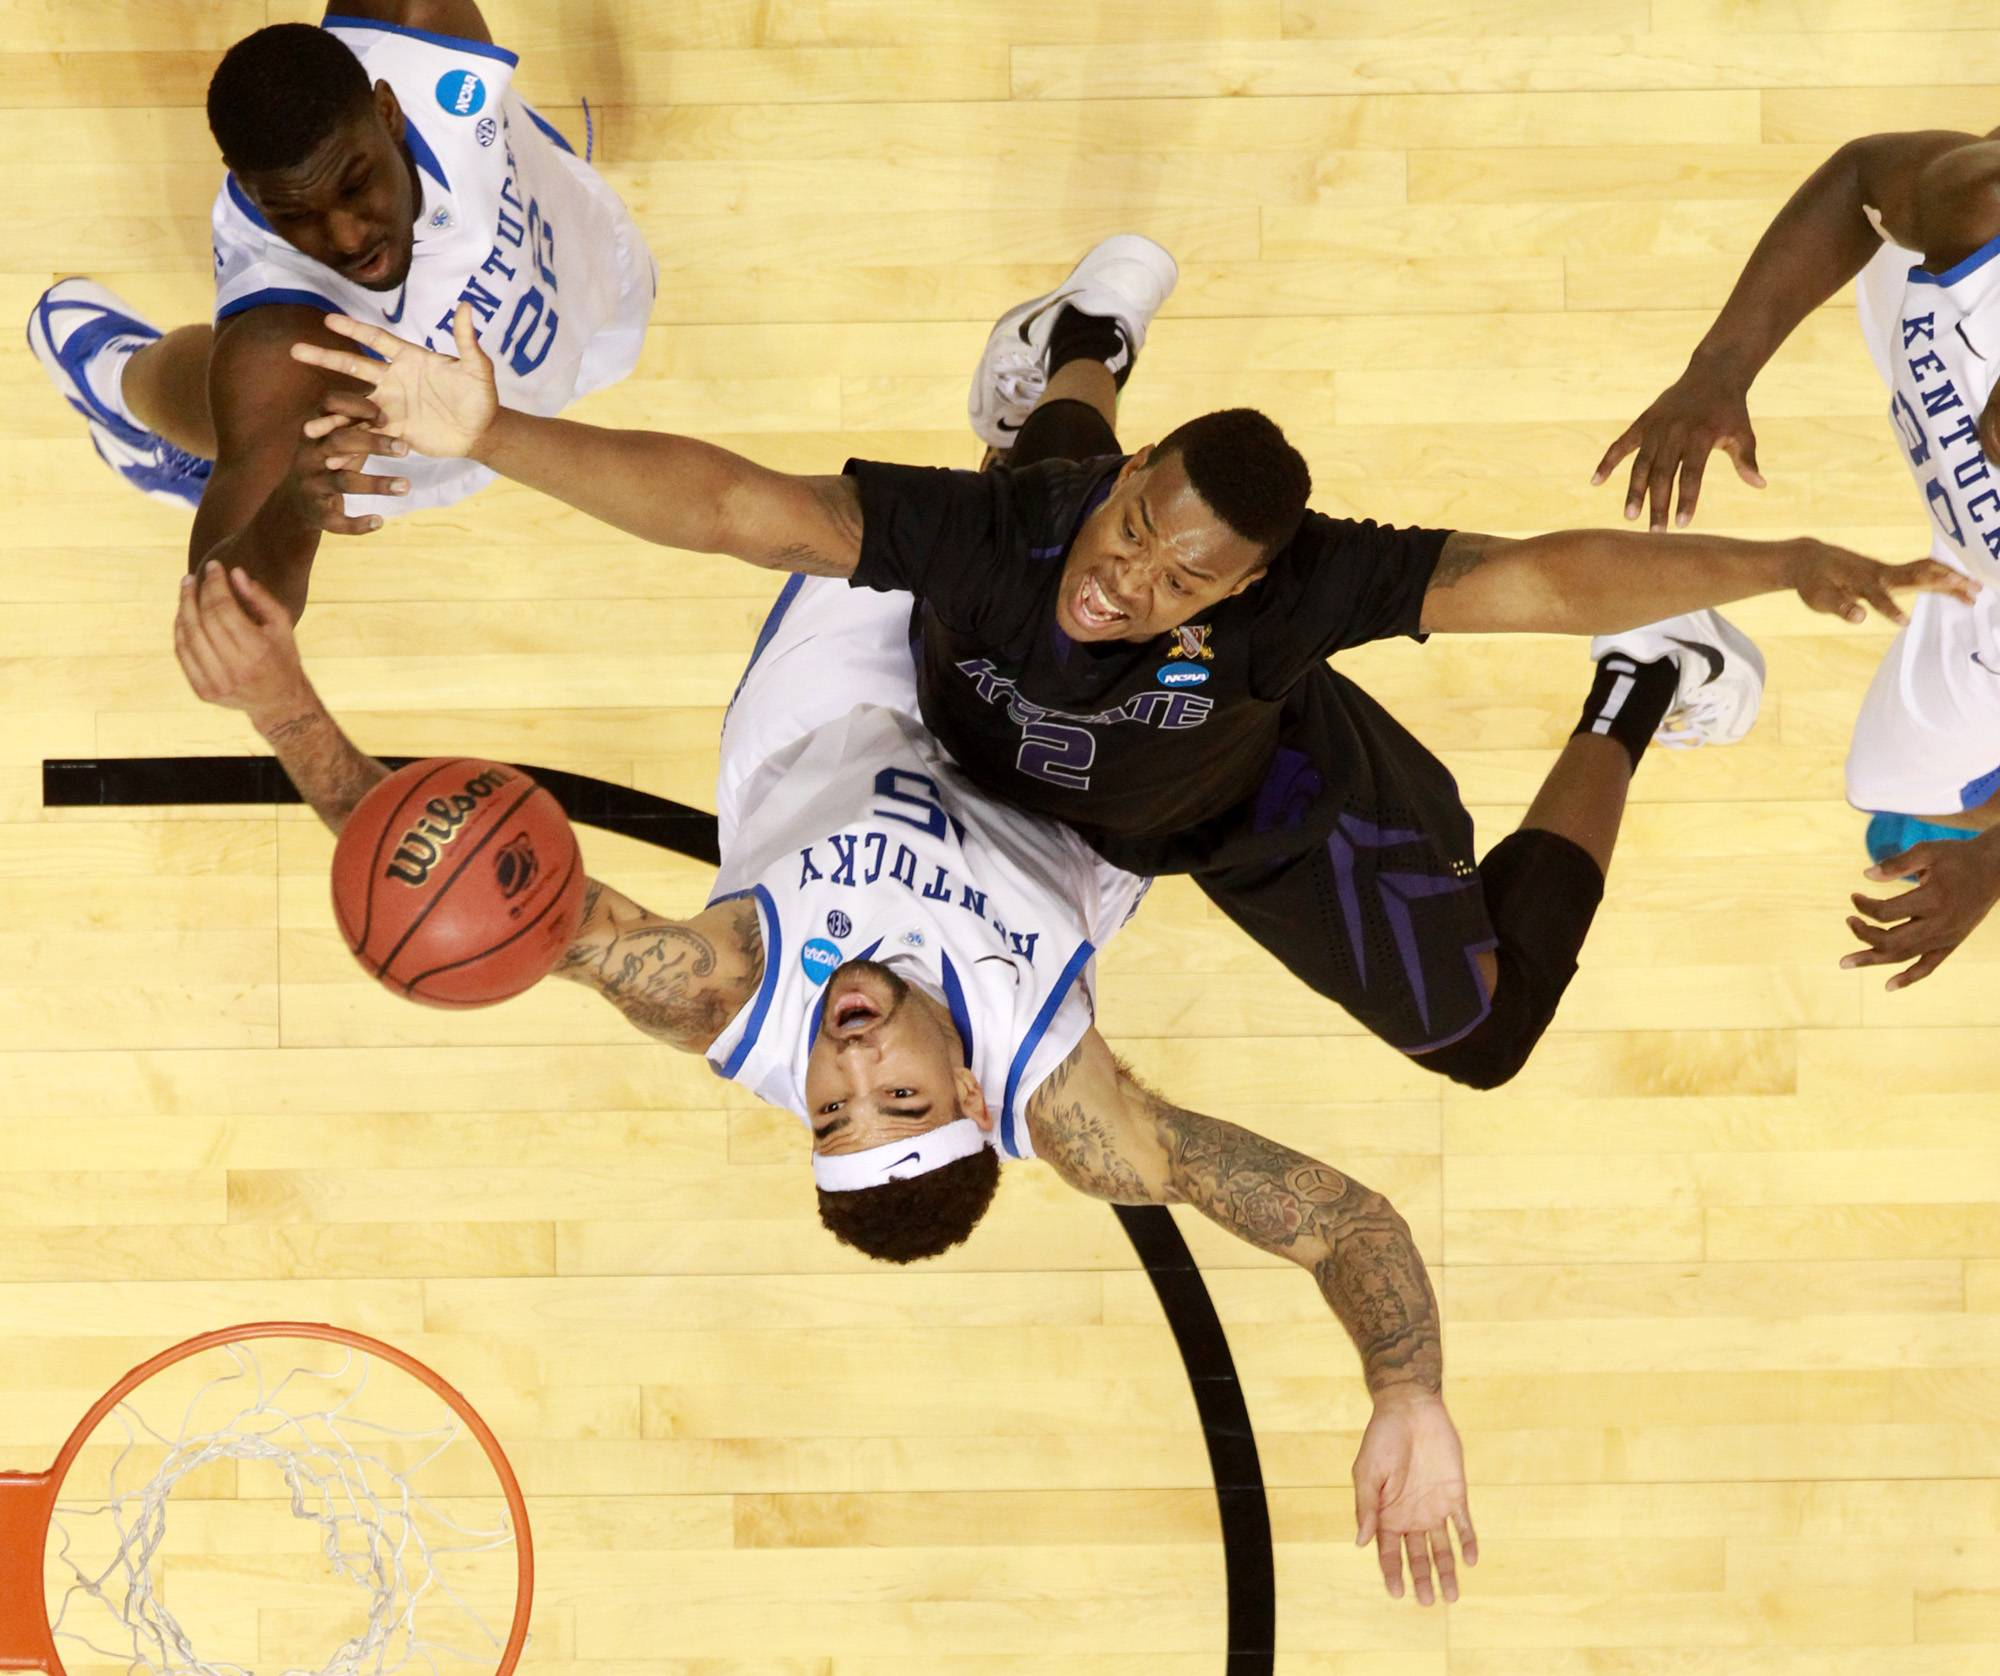 Kansas State guard Marcus Foster, right, has his shot contested by Kentucky forward Willie Cauley-Stein, lower, and forward Alex Poythress during an NCAA tournament game Friday at the Scottrade Center in St. Louis.